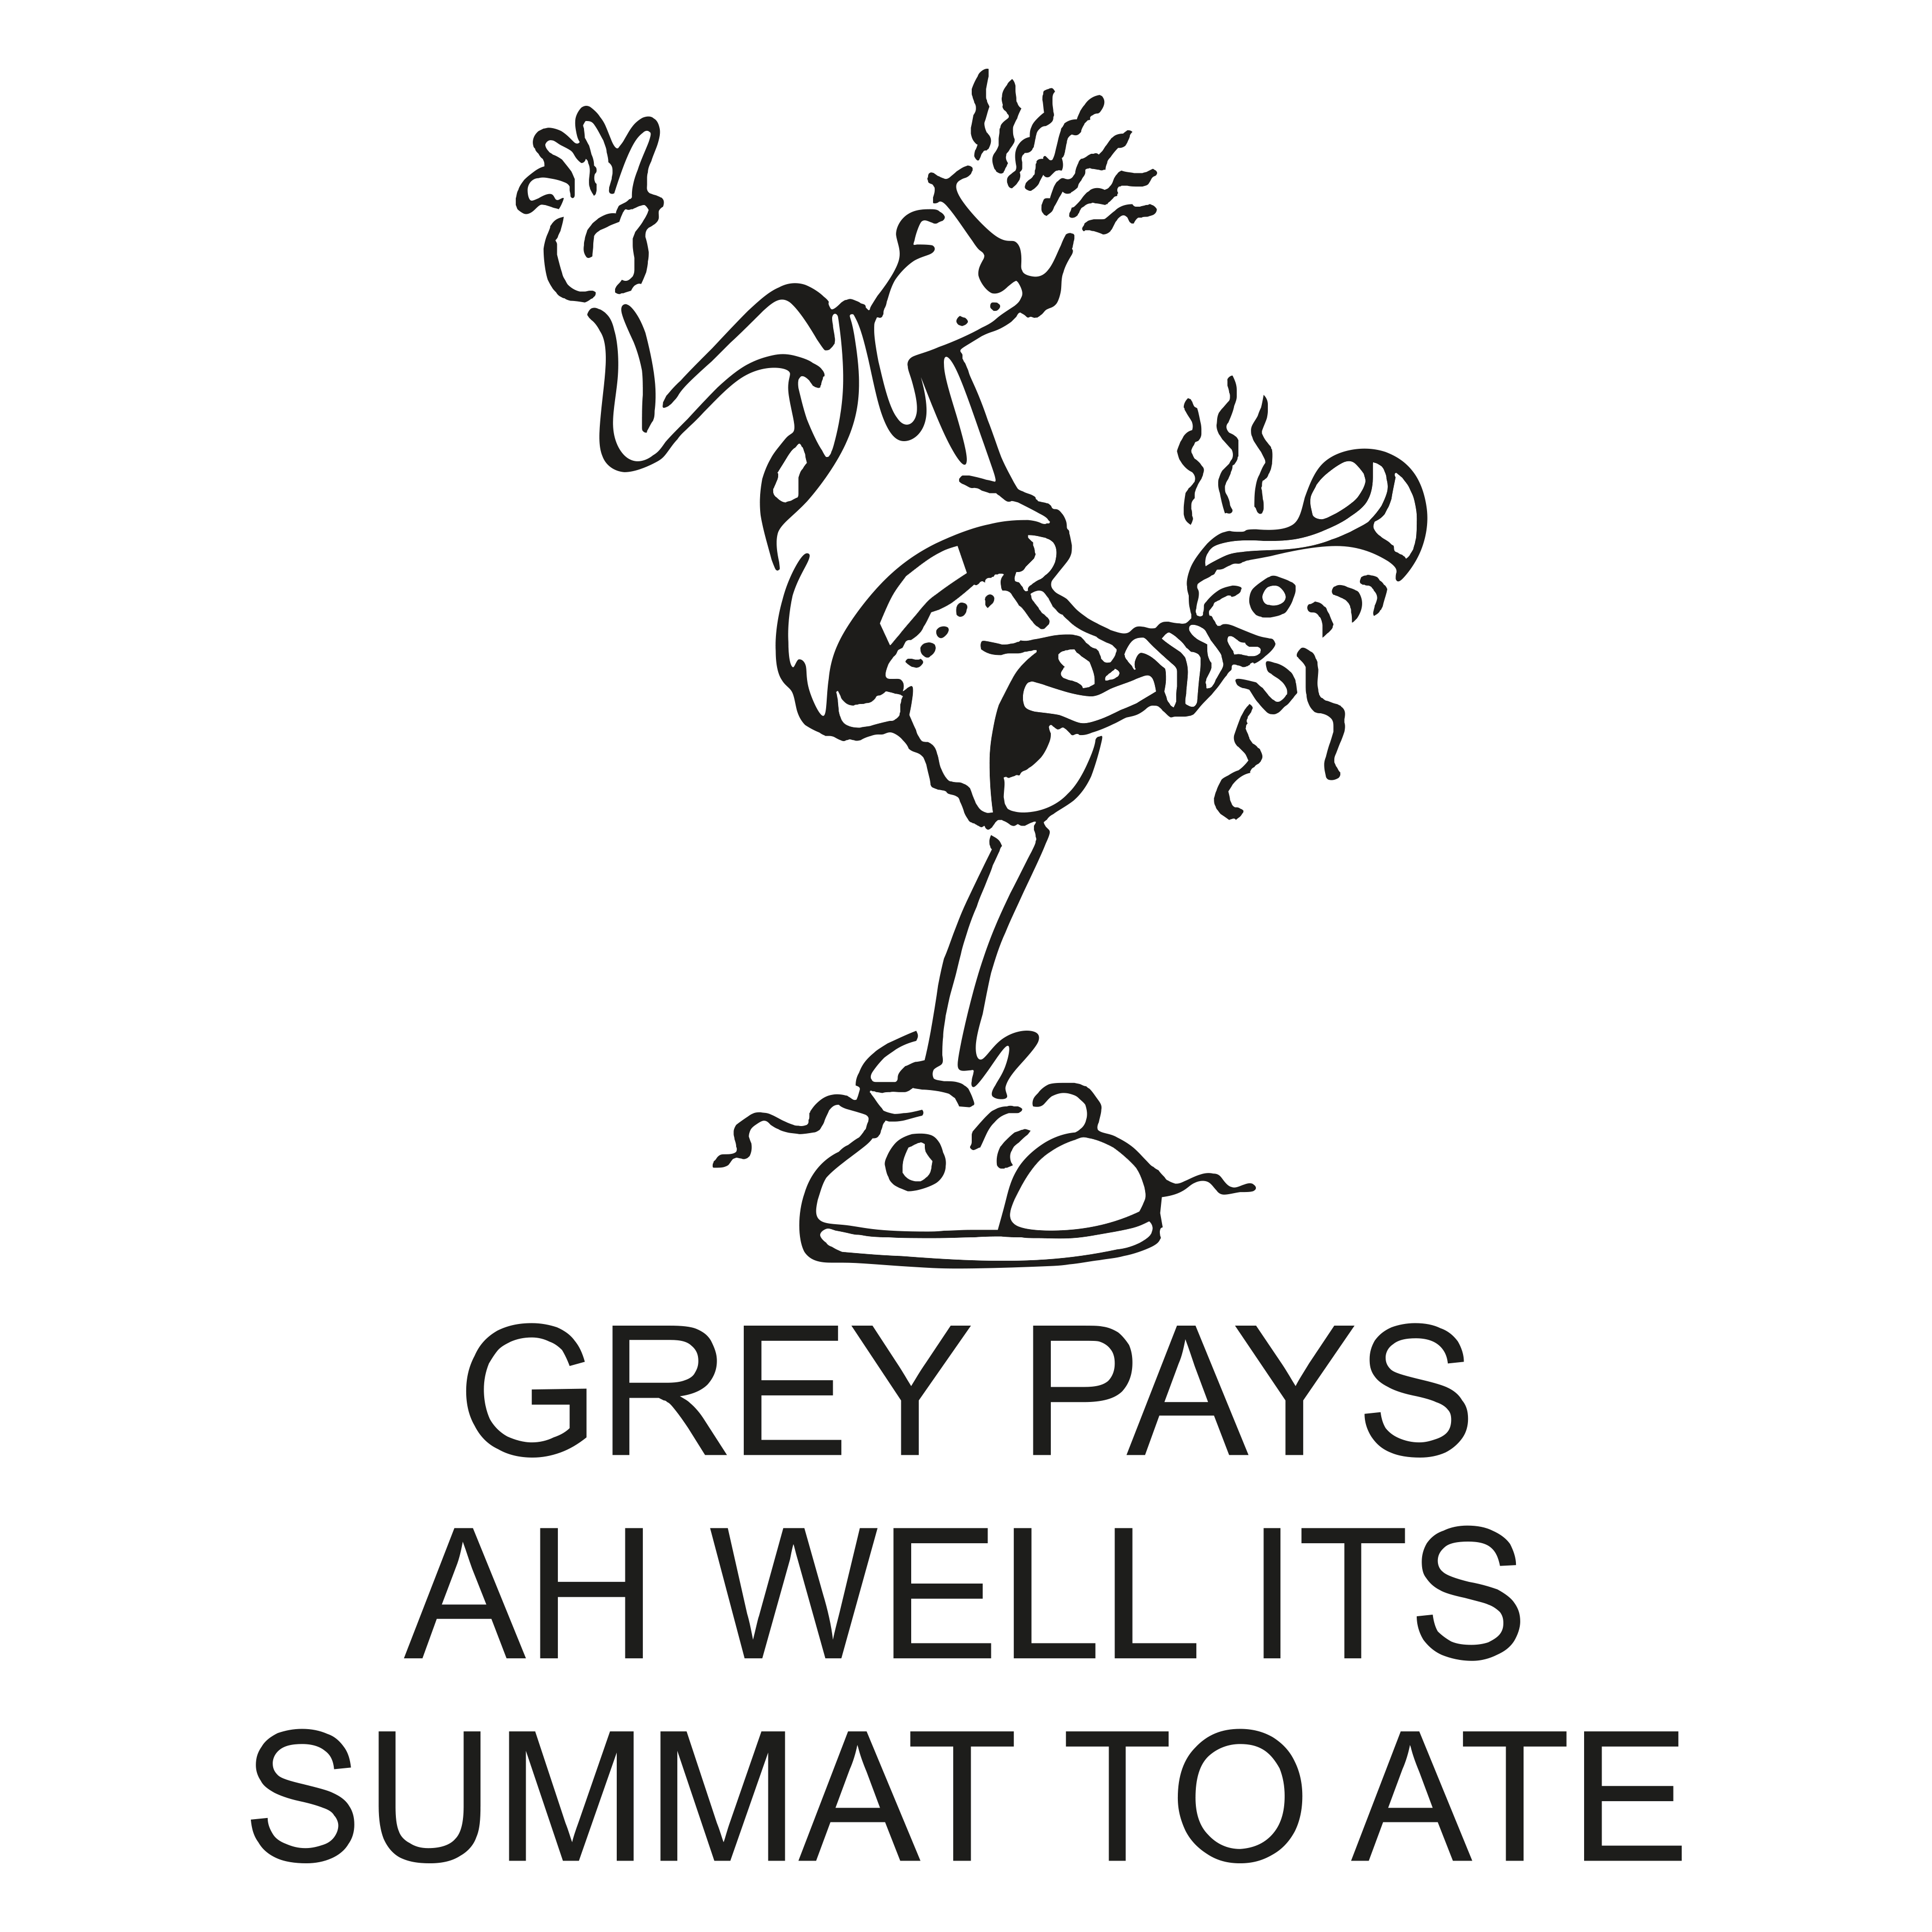 BLC007 - Grey Pays Ah Well Its Summat to Ate